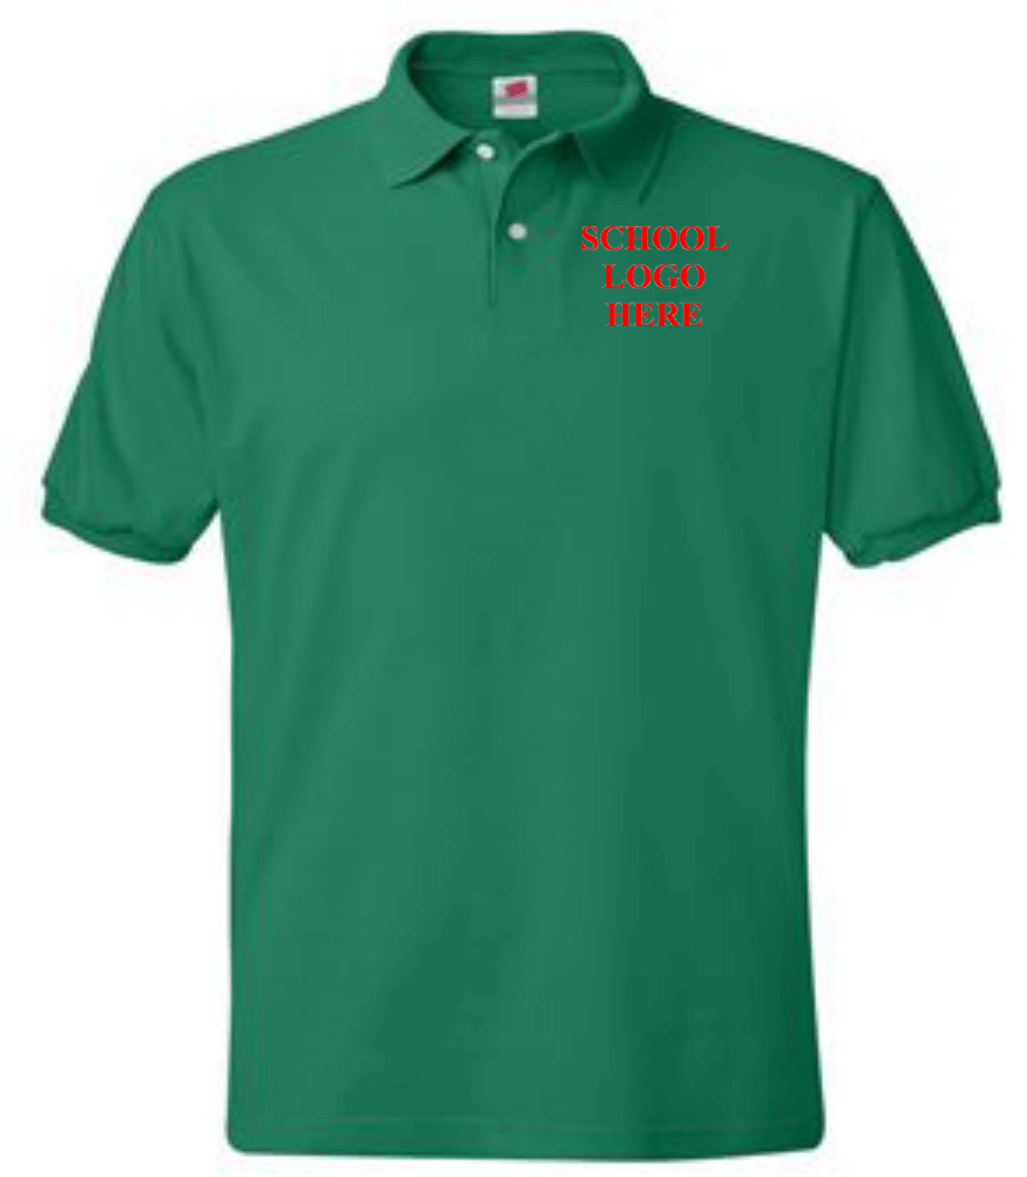 Greenbrae School Uniform Kelly Green Polo